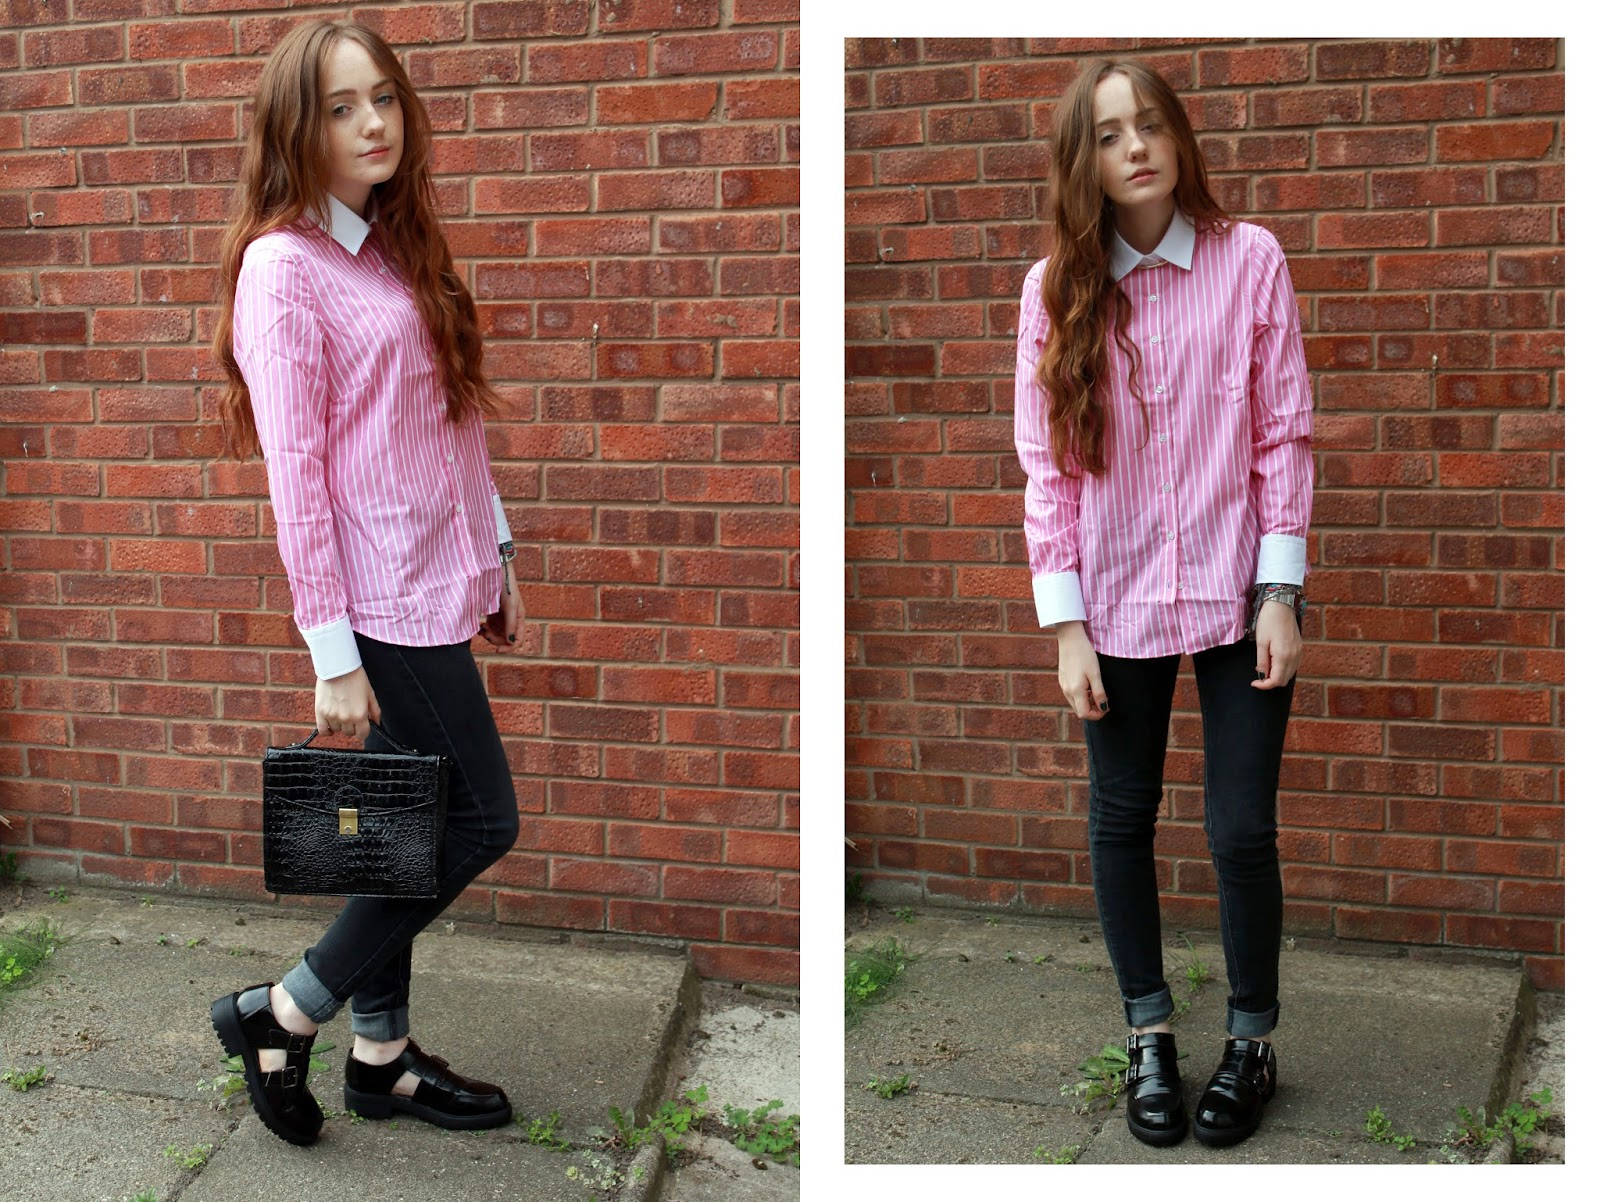 hawes and curtis tailored shirt, primark jeans, primark monk shoes and black satchel